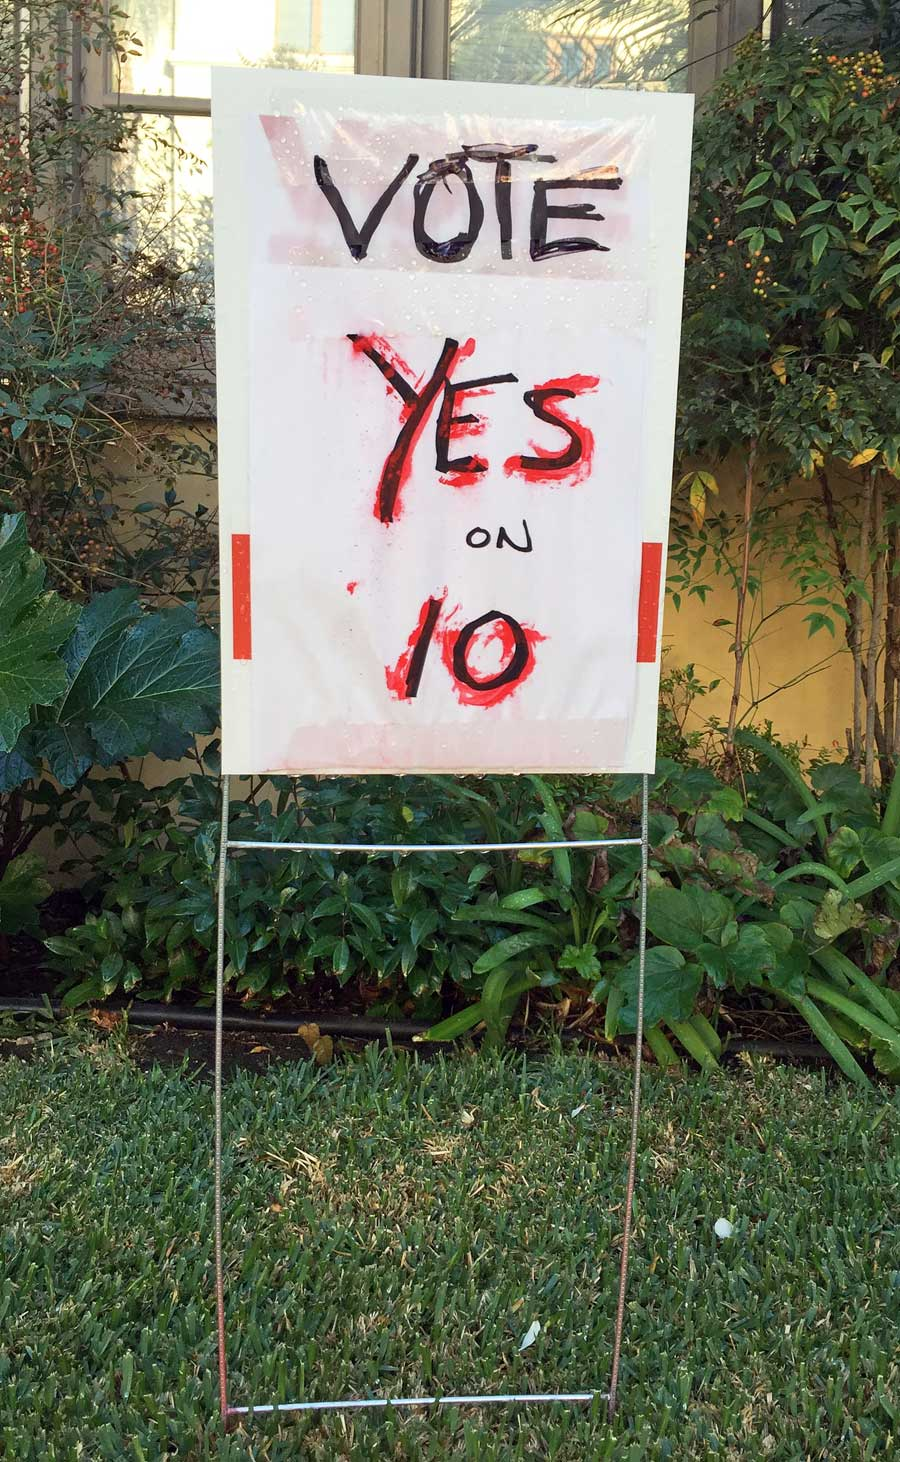 Yes-on-10 sign